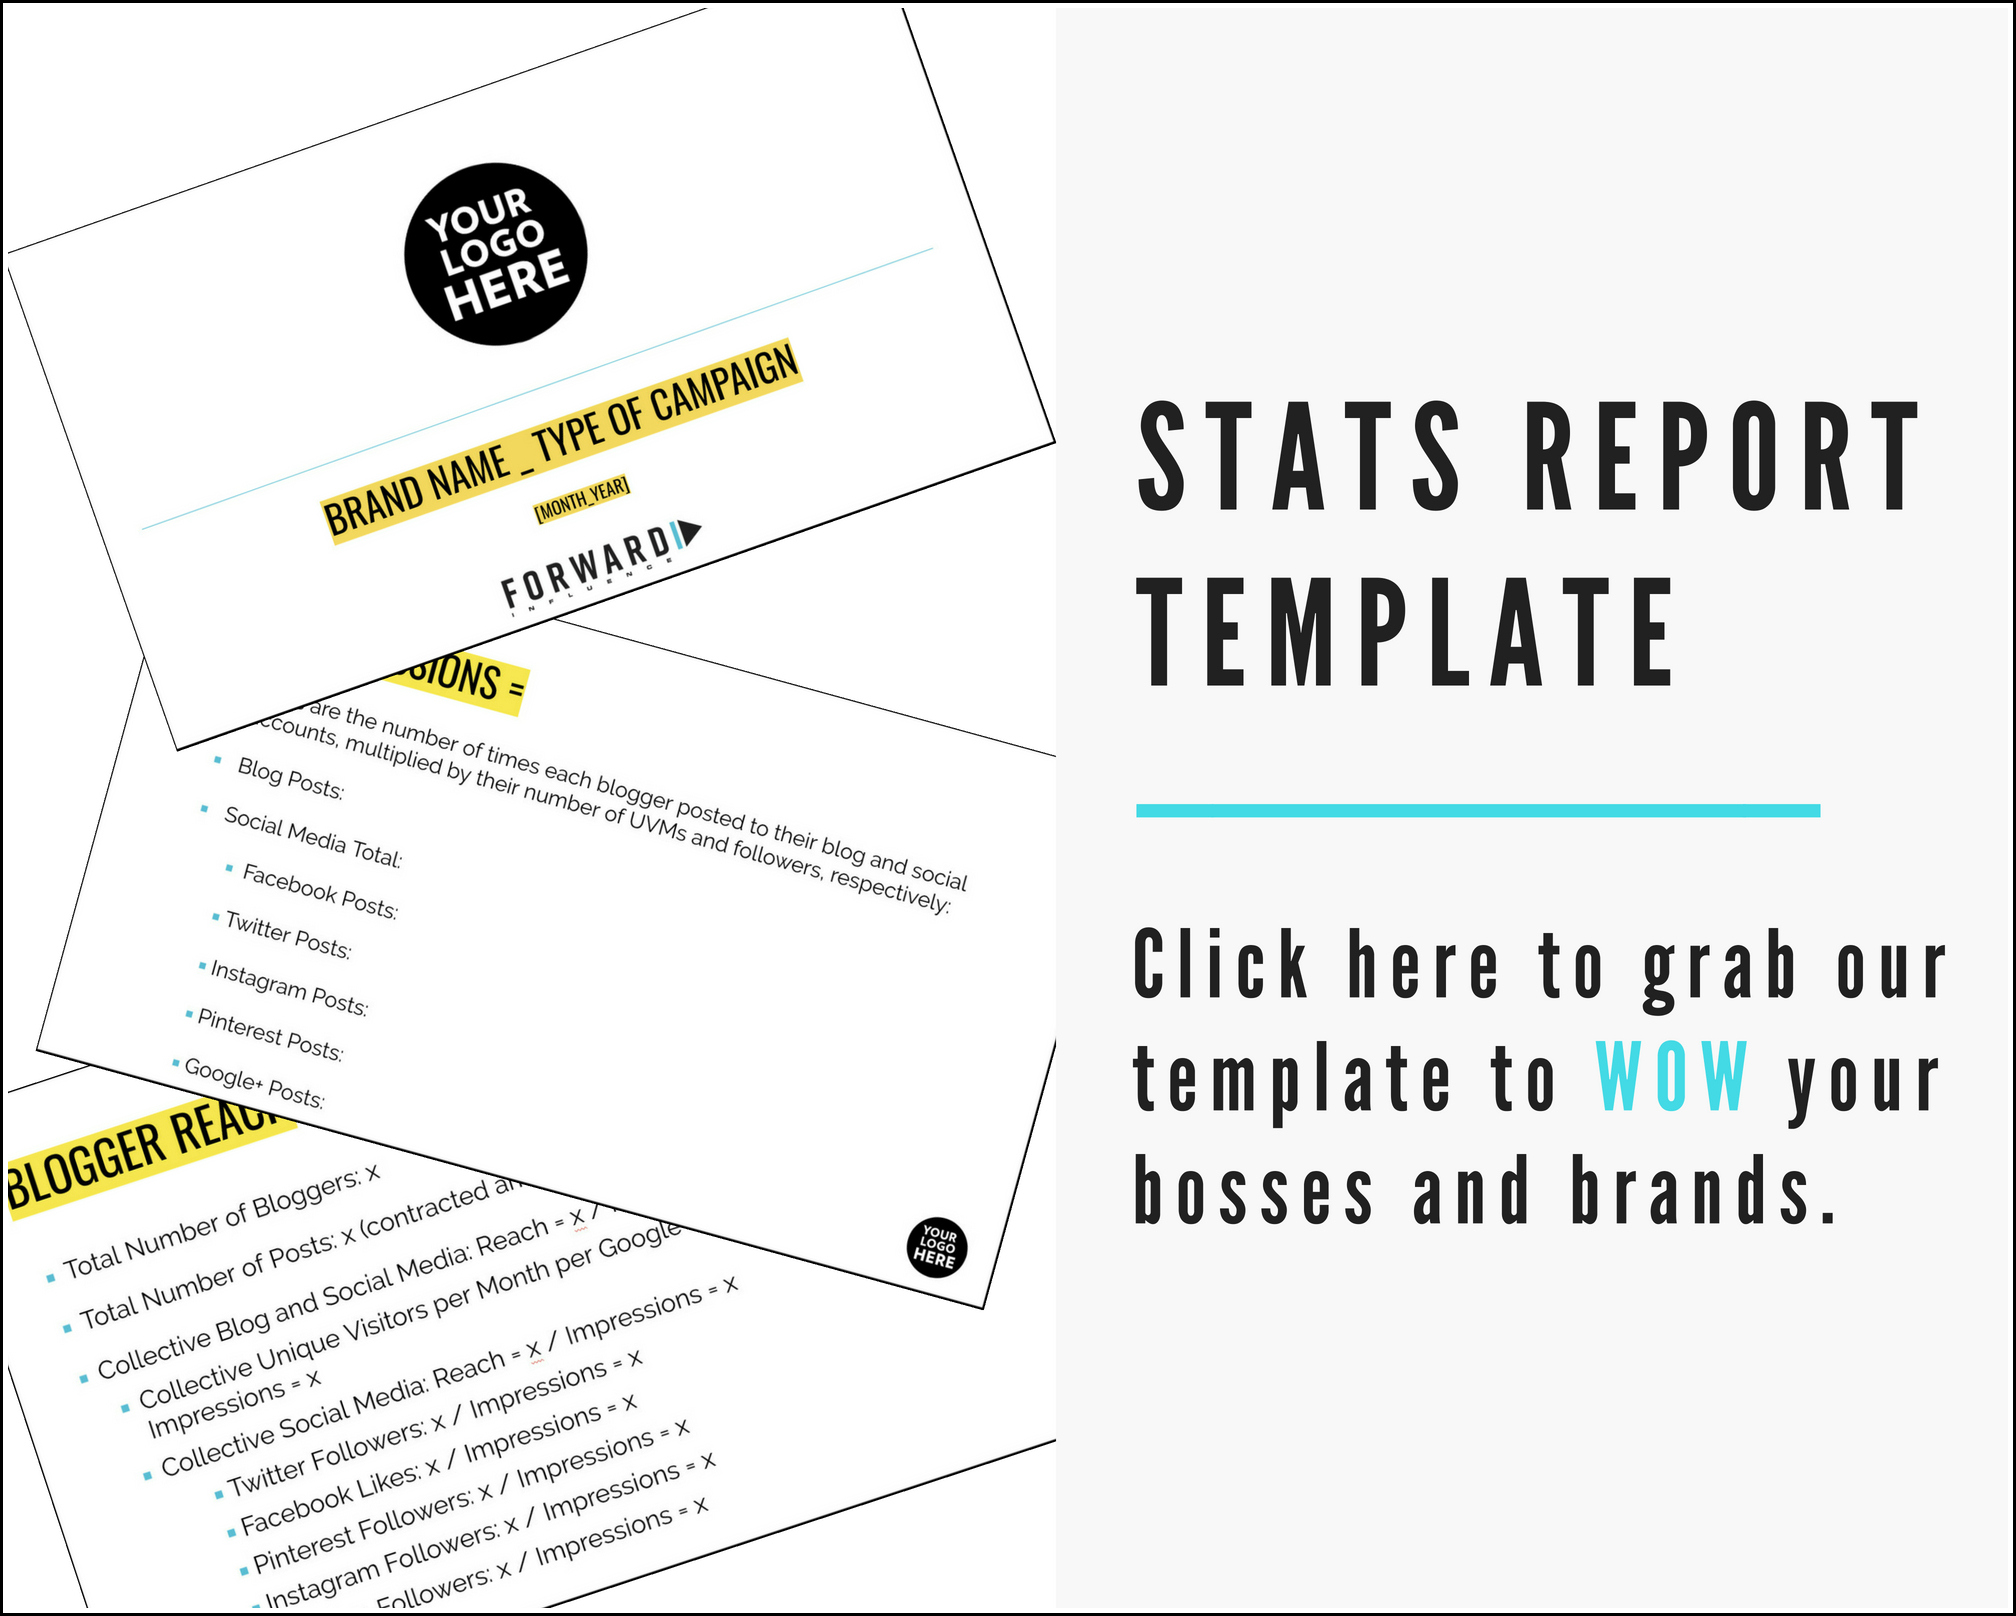 How to Prepare Metrics Reports That Will Wow Your Bosses and Brands